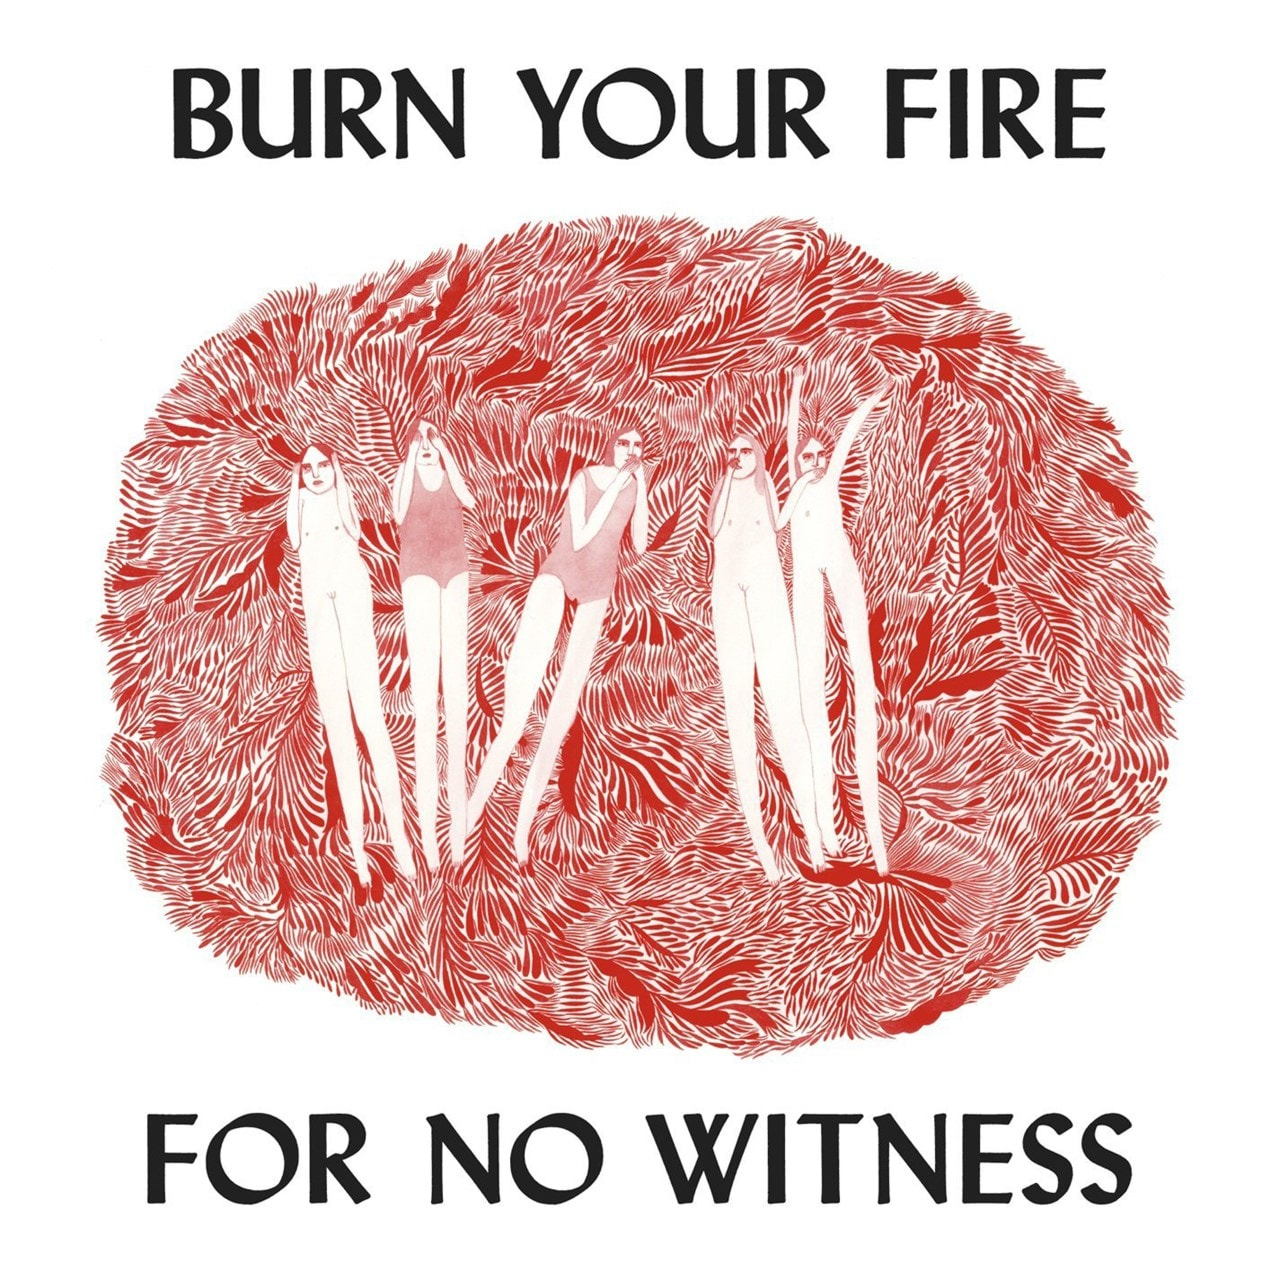 Burn Your Fire for No Witness - 1